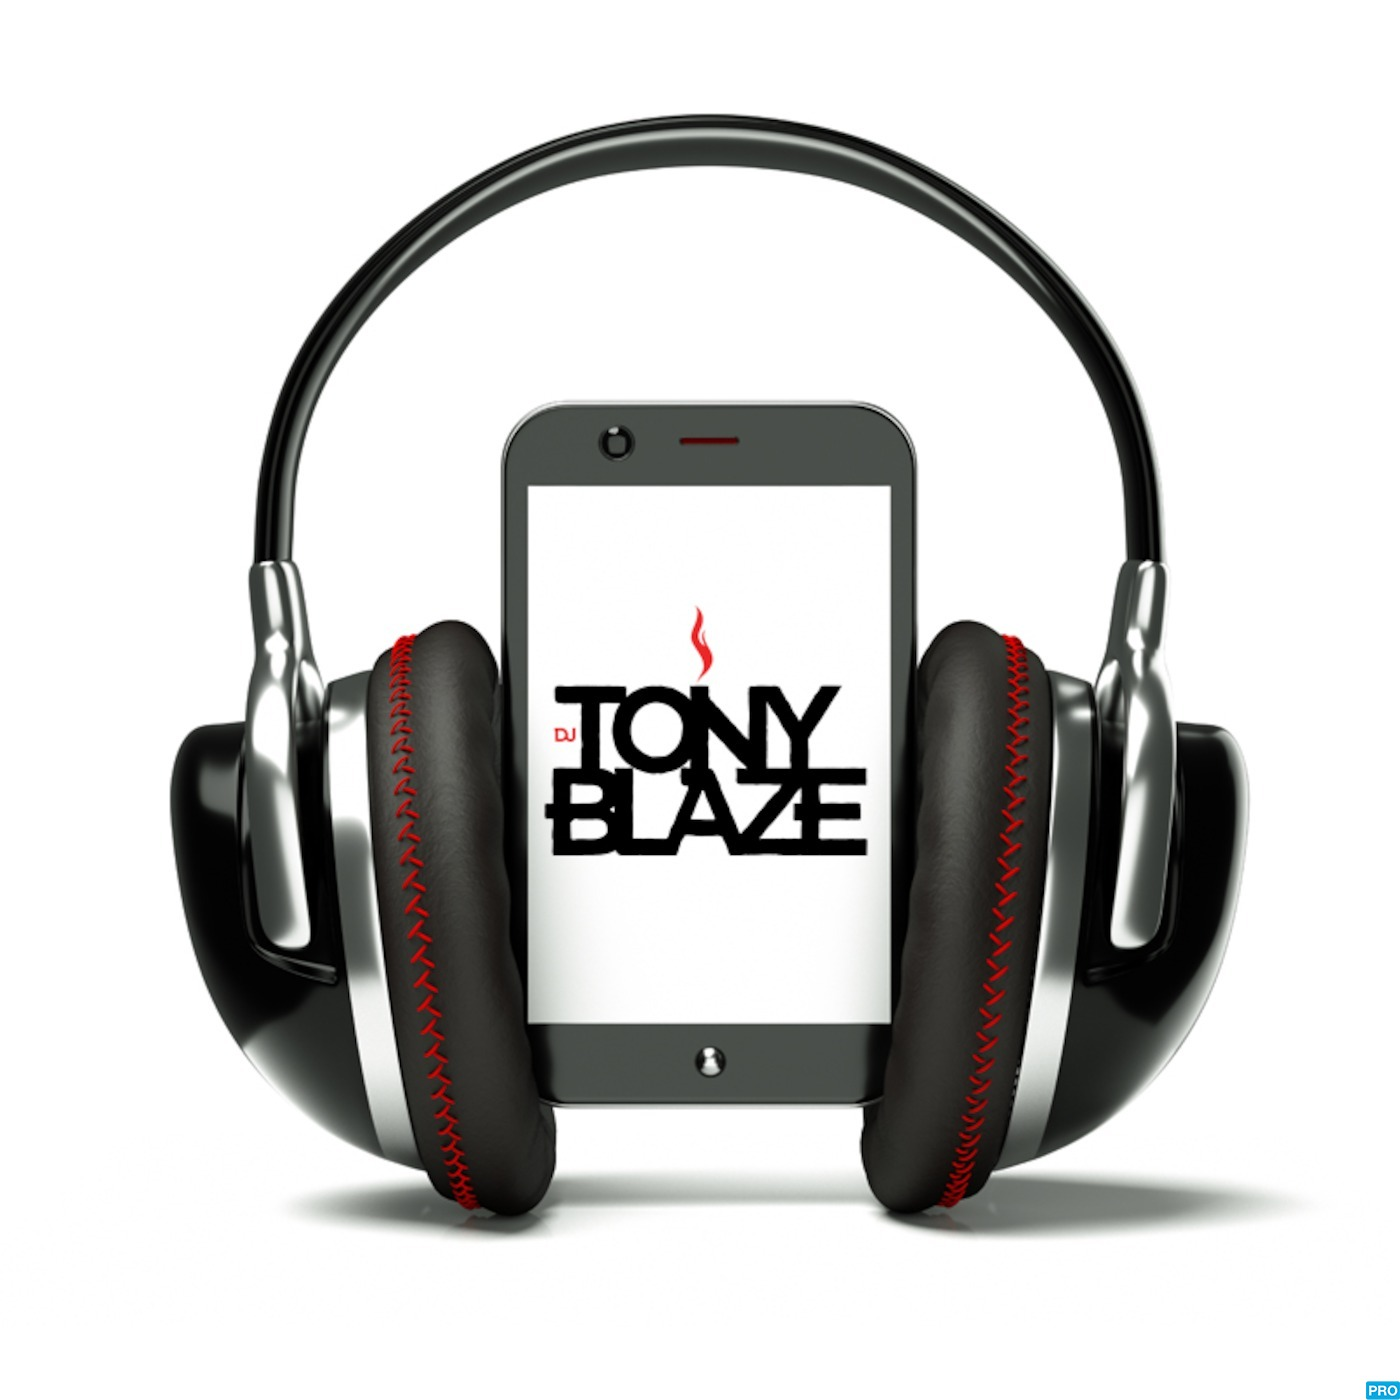 Dj Tony Blaze's Podcast